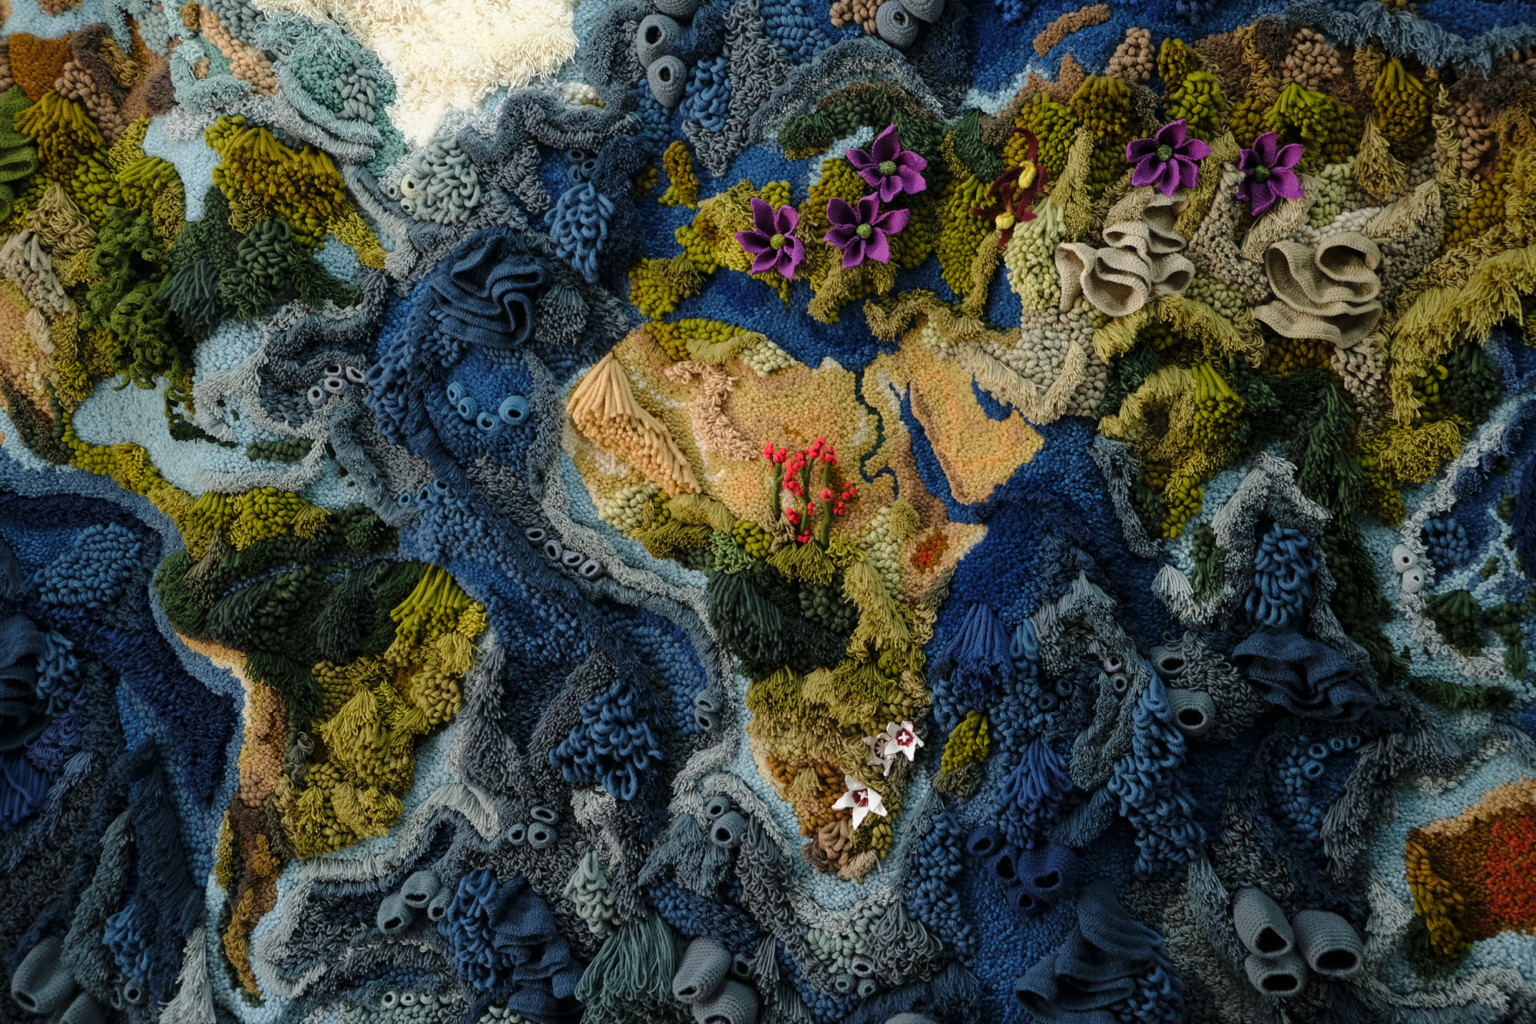 20 foot-wide Tapestry by Vanessa Barragão recreates the world in textural yarn